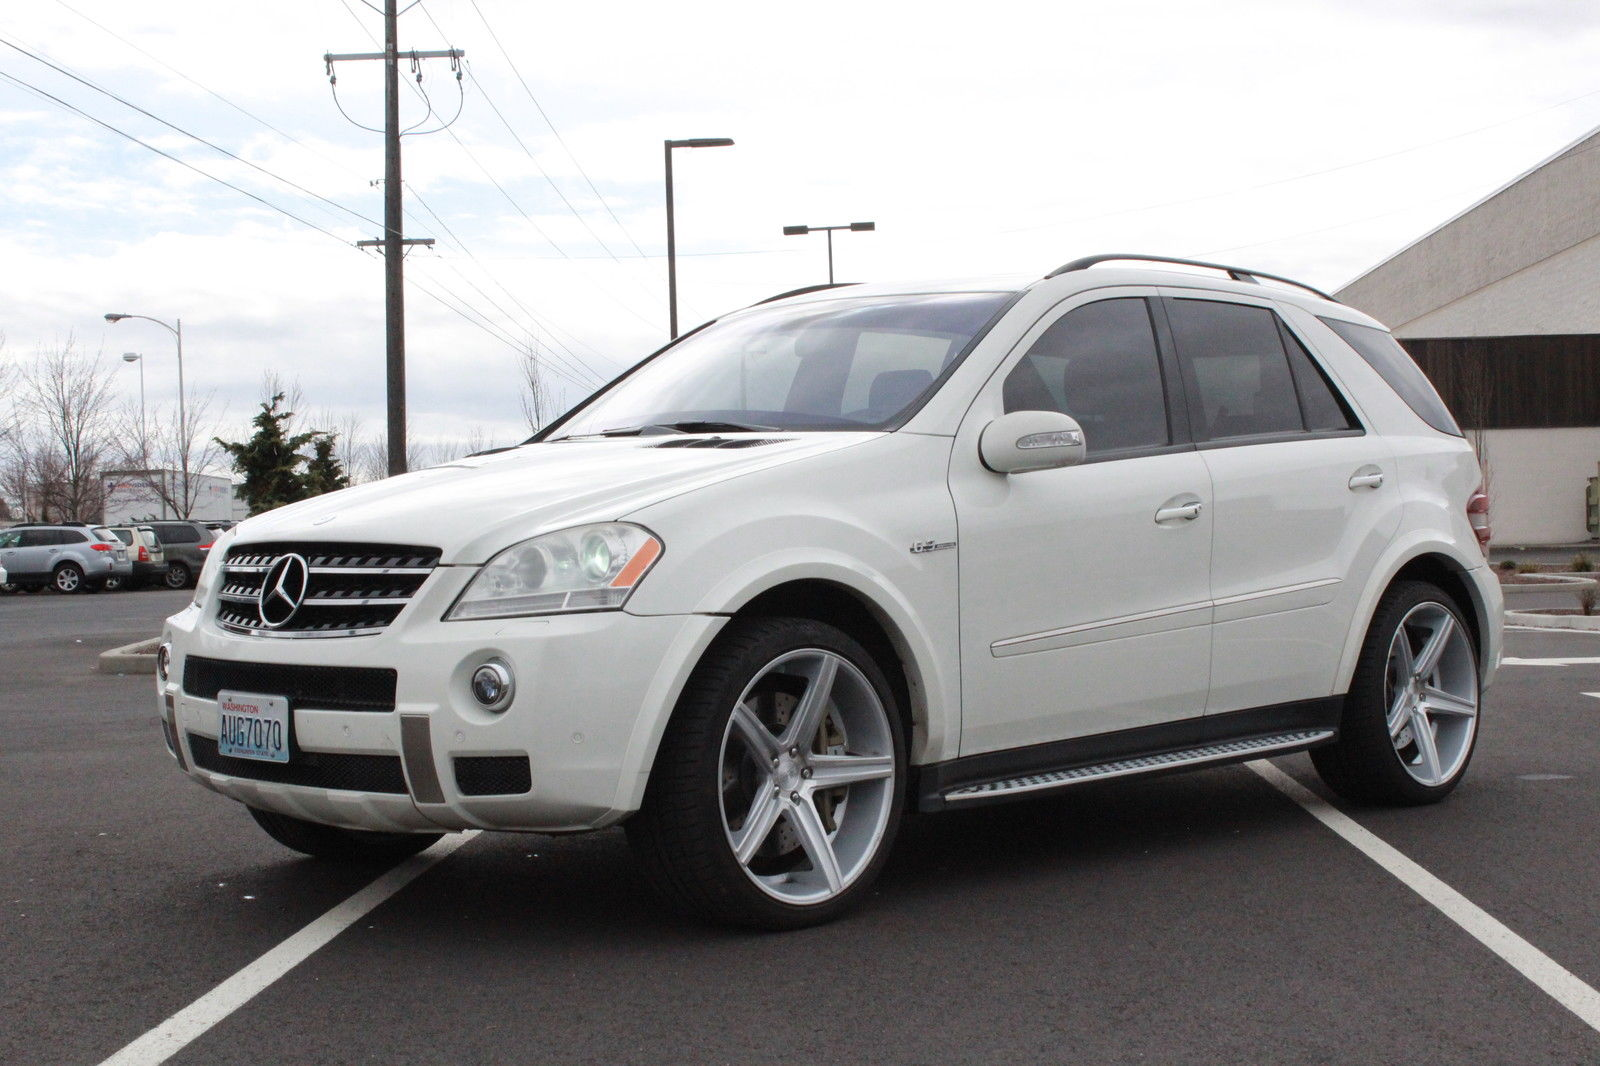 2008 mercedes benz w164 ml63 amg on 22 niche wheels for Amg wheels for mercedes benz